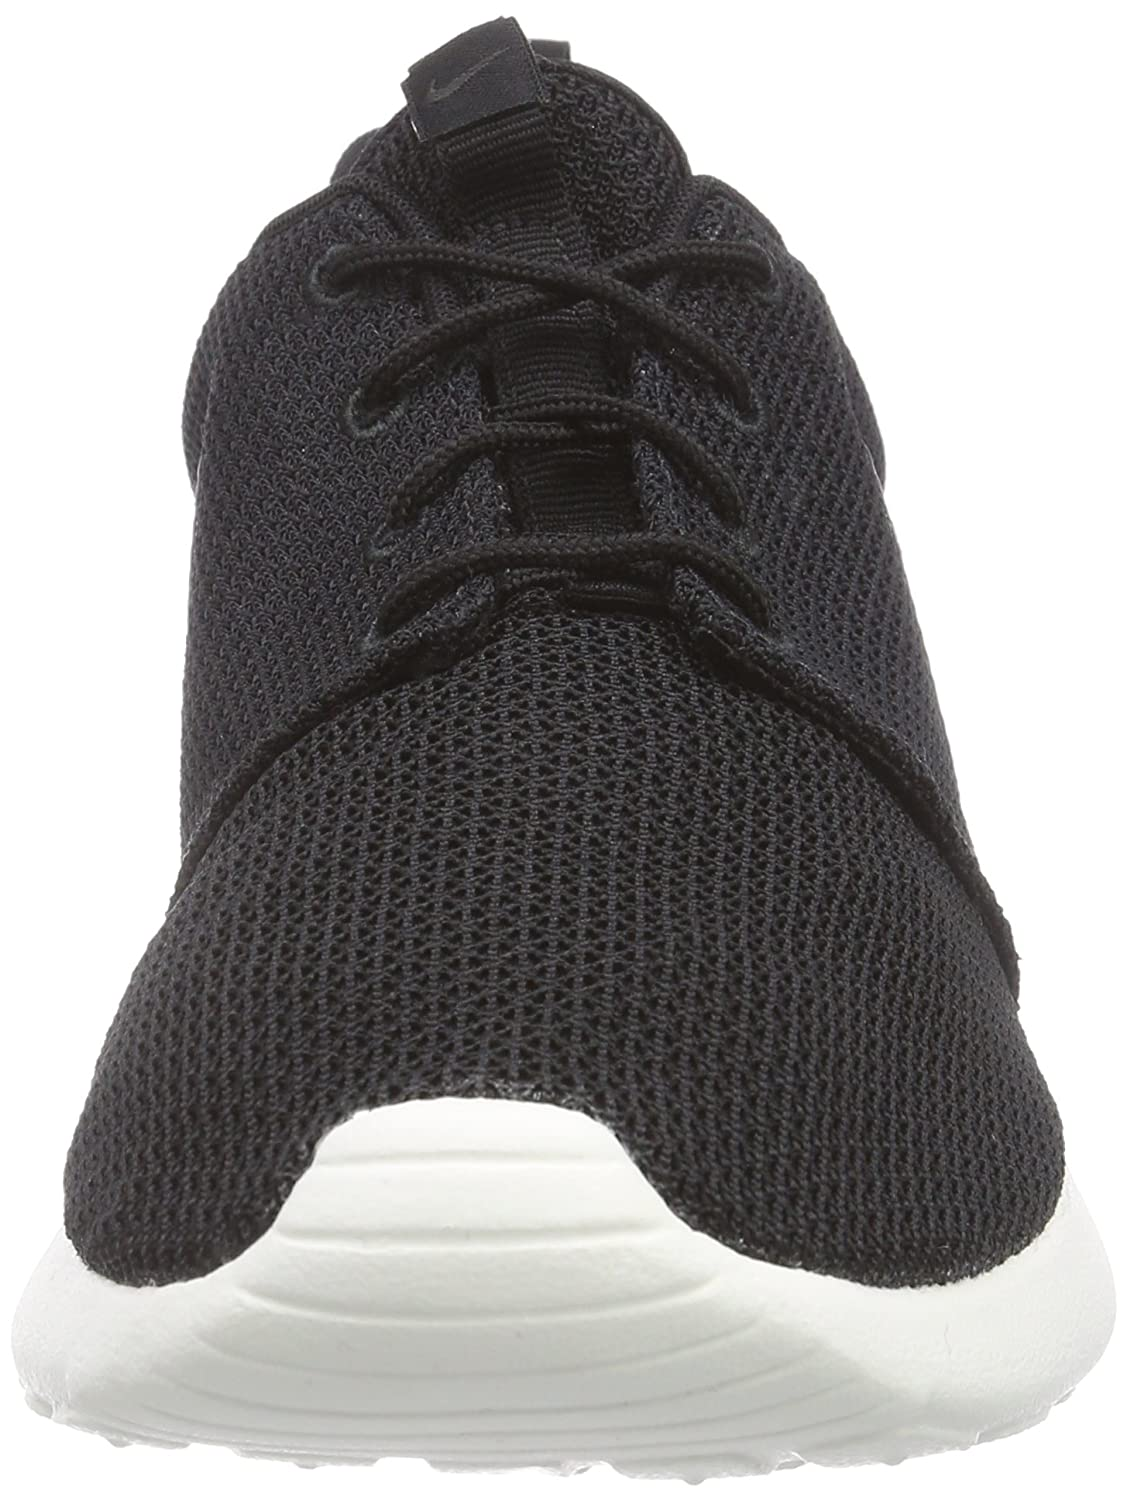 info for 76beb c4bb0 Amazon.com  Nike Mens Roshe Run  Fashion Sneakers